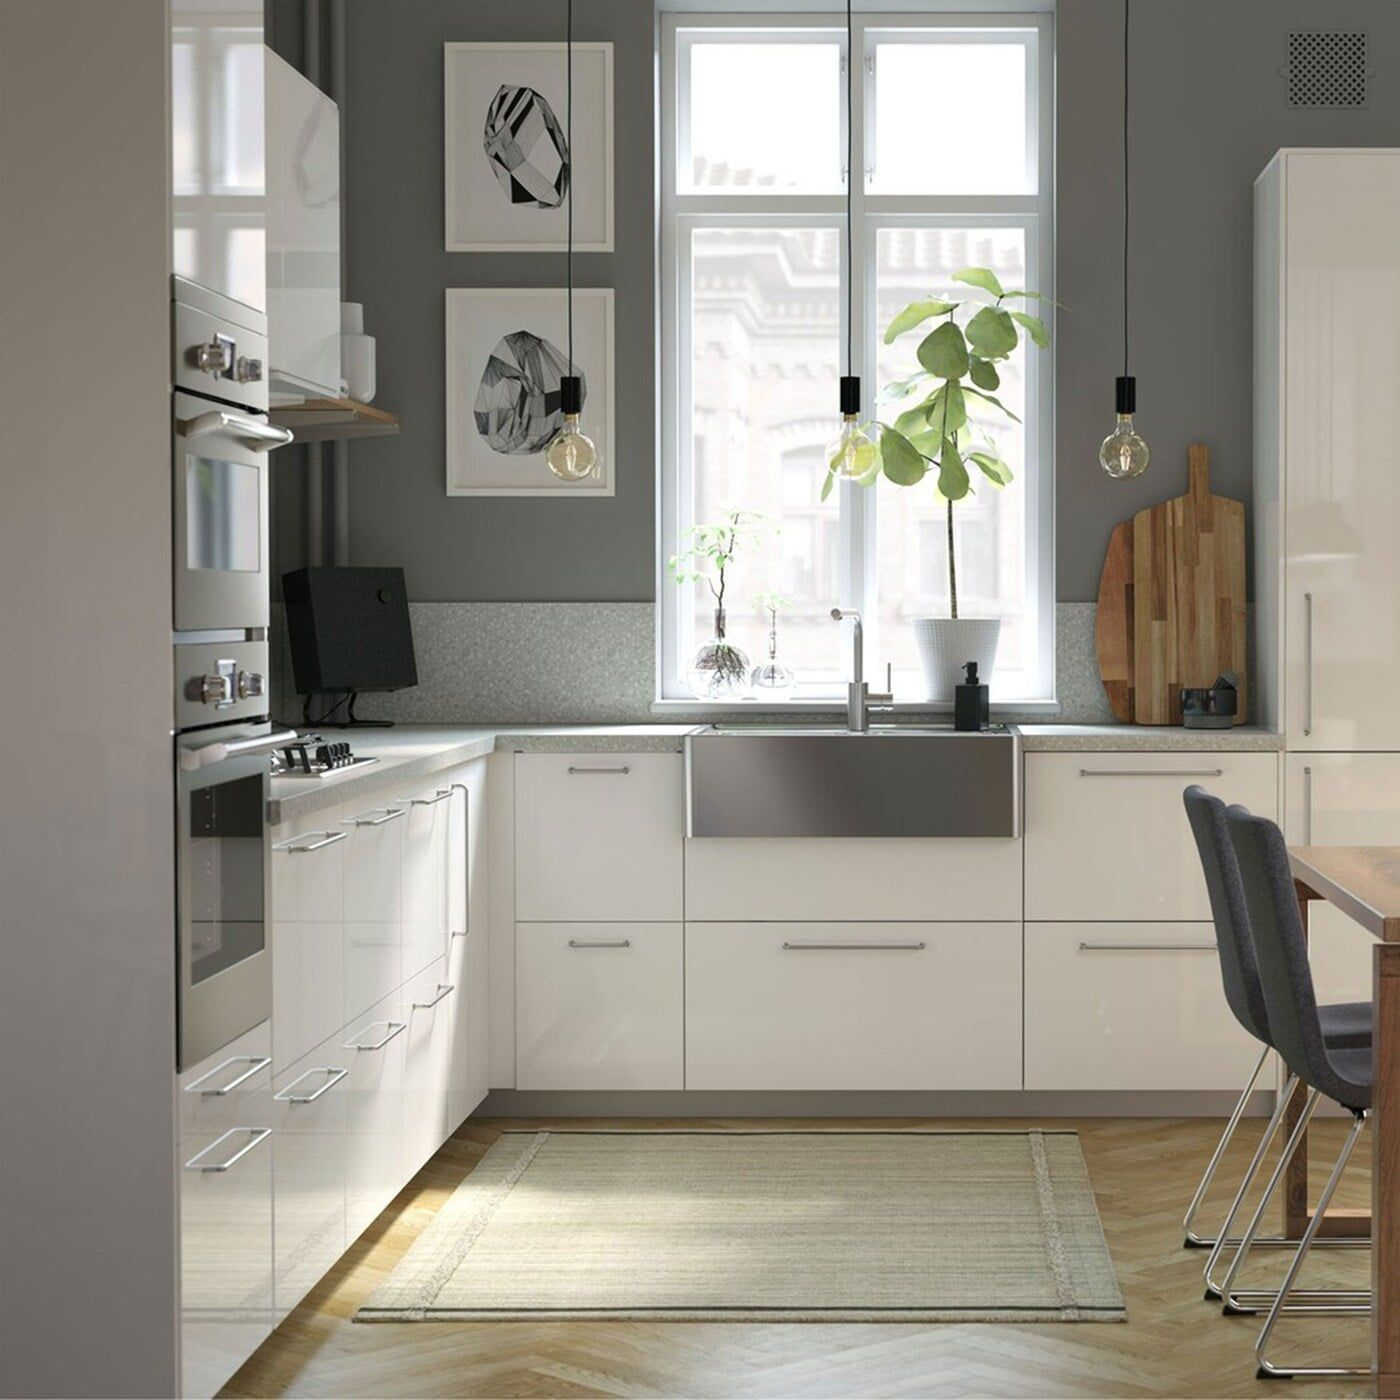 A modern, bright, and airy kitchen with wooden detail in